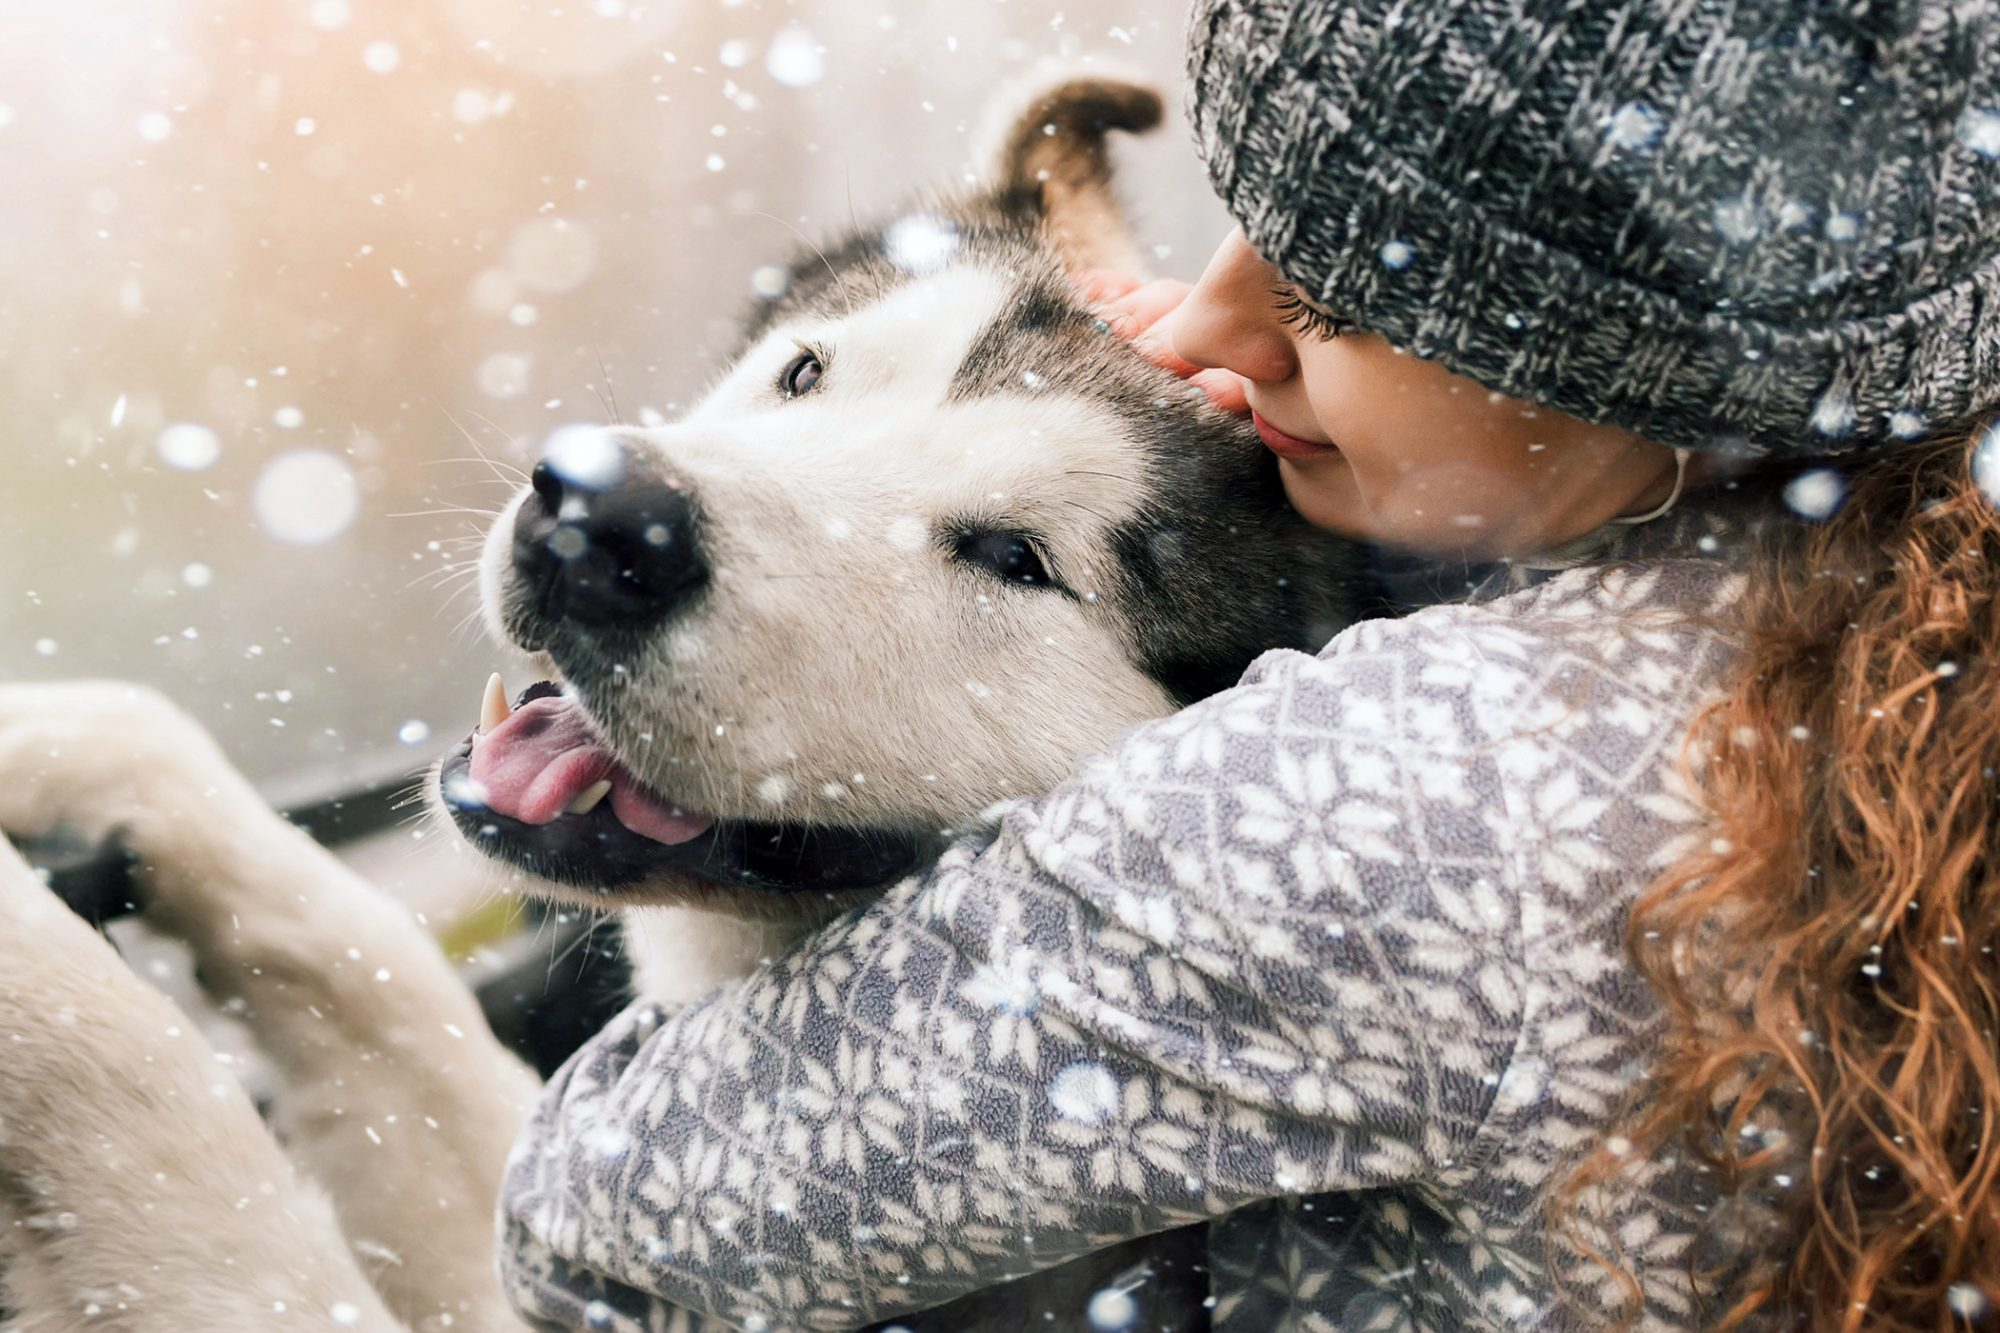 Husky enjoying the snow and a hug from their human